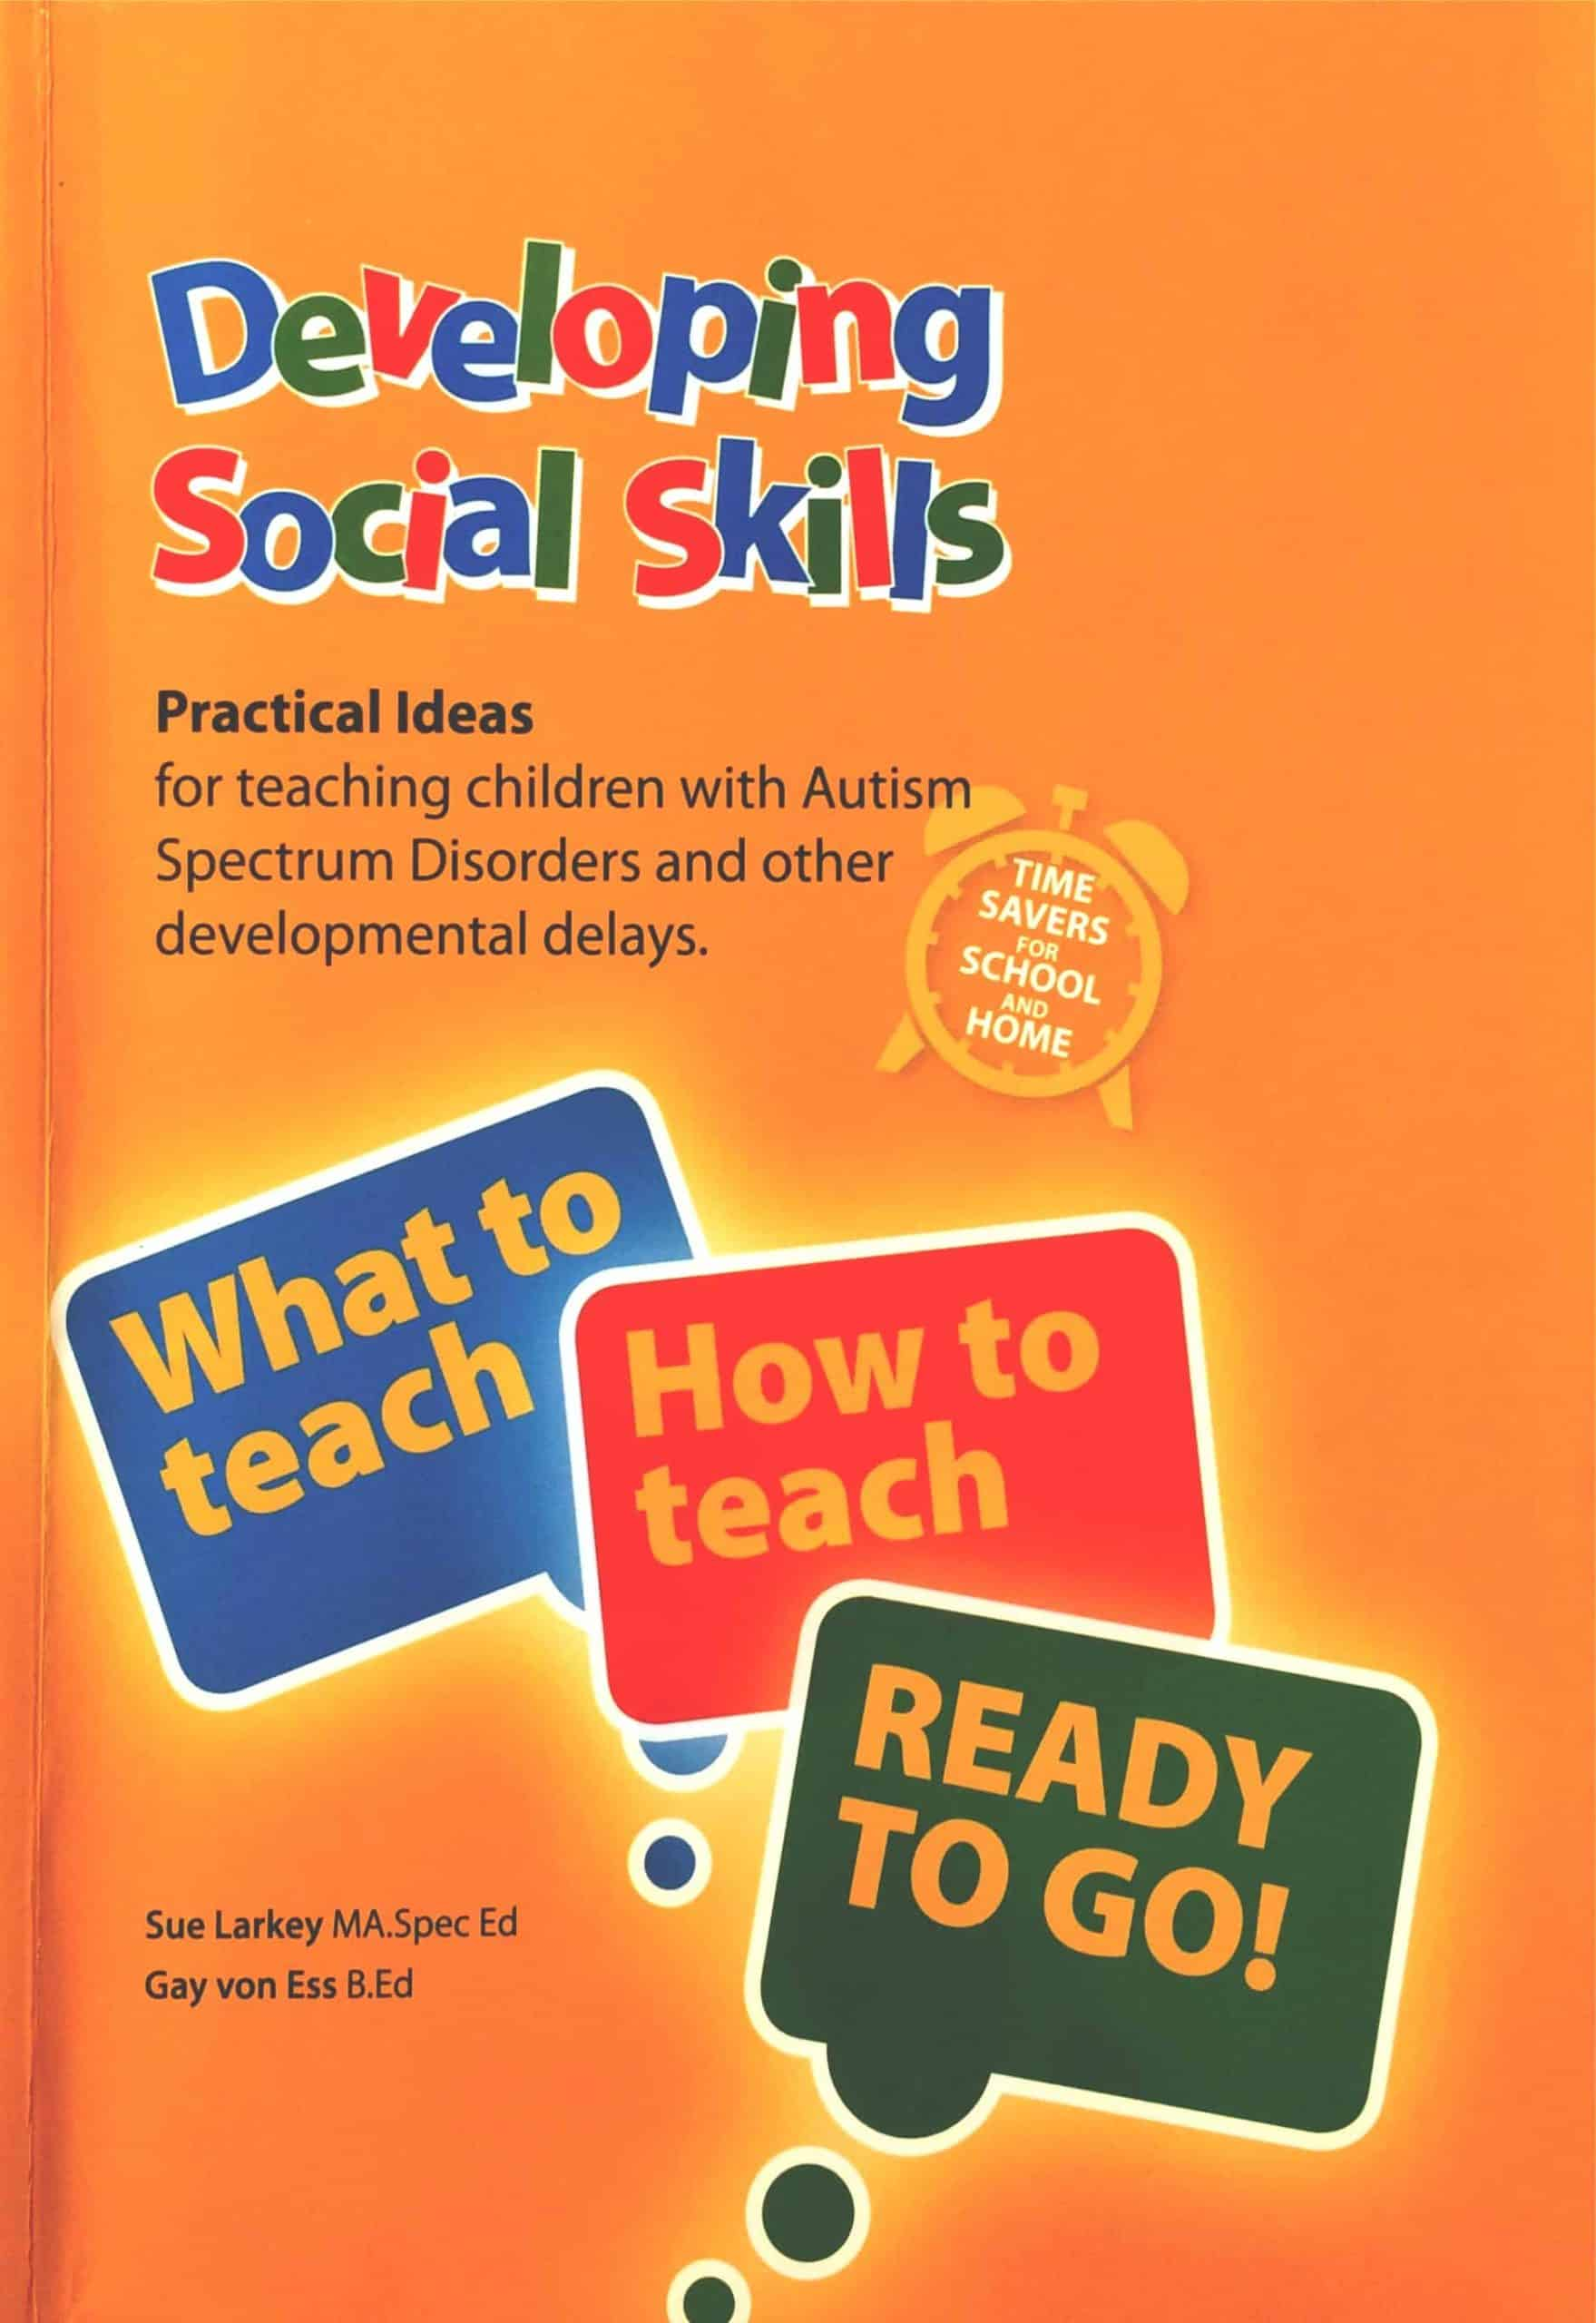 Book titled: Developing Social Skills; Practical Ideas for teaching children with Autism Spectrum Disorders and other developmental delays, by Sue Larkey and Gay von Ess